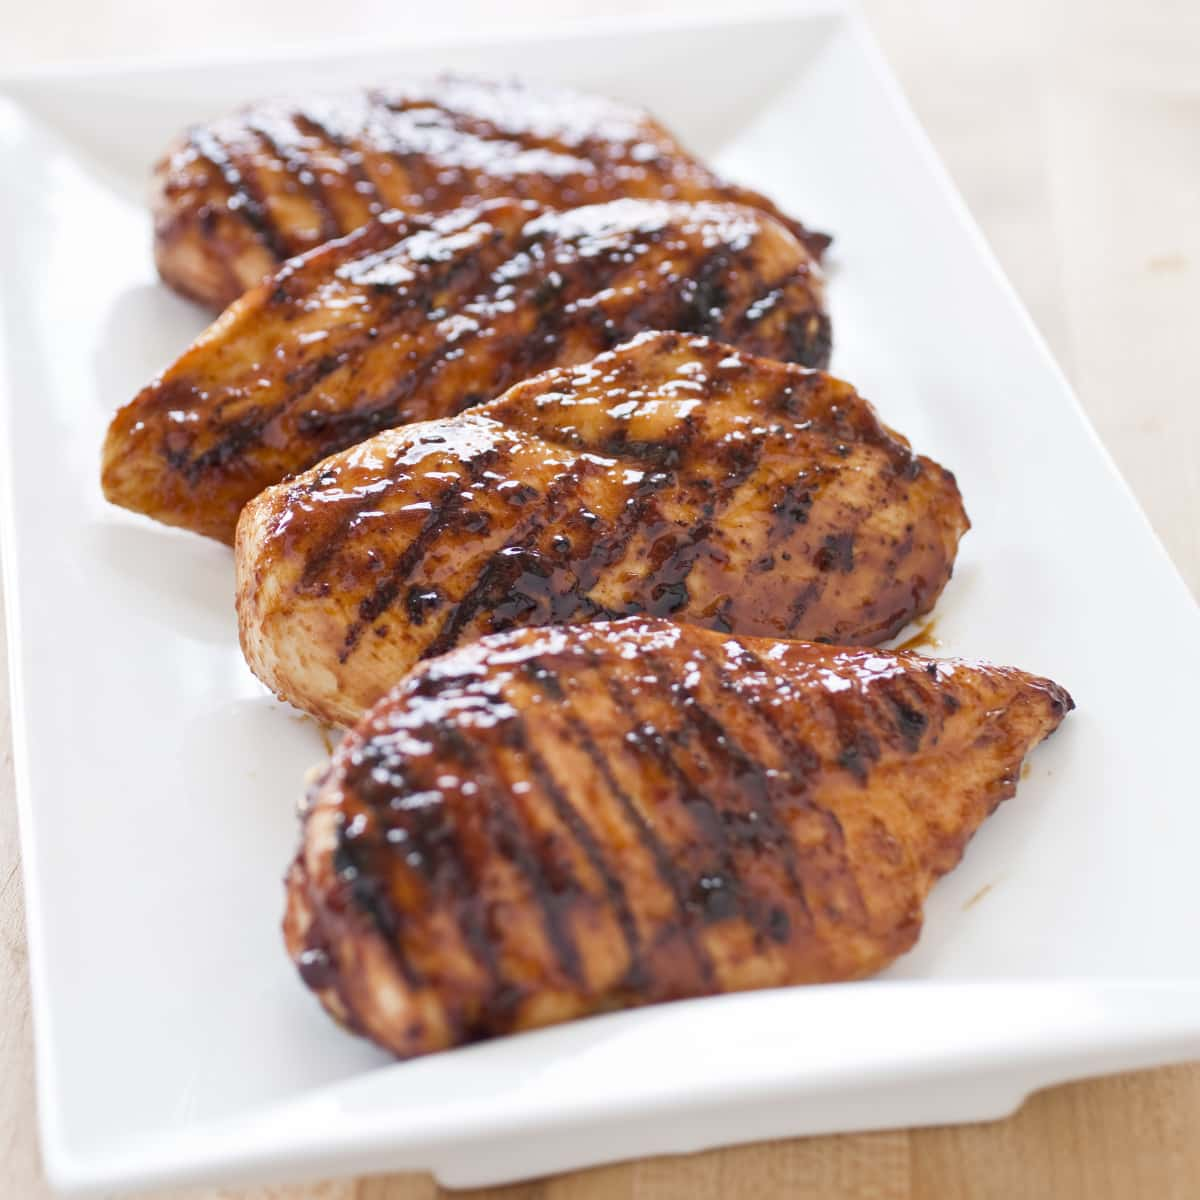 How do you cook bbq chicken breast on the grill